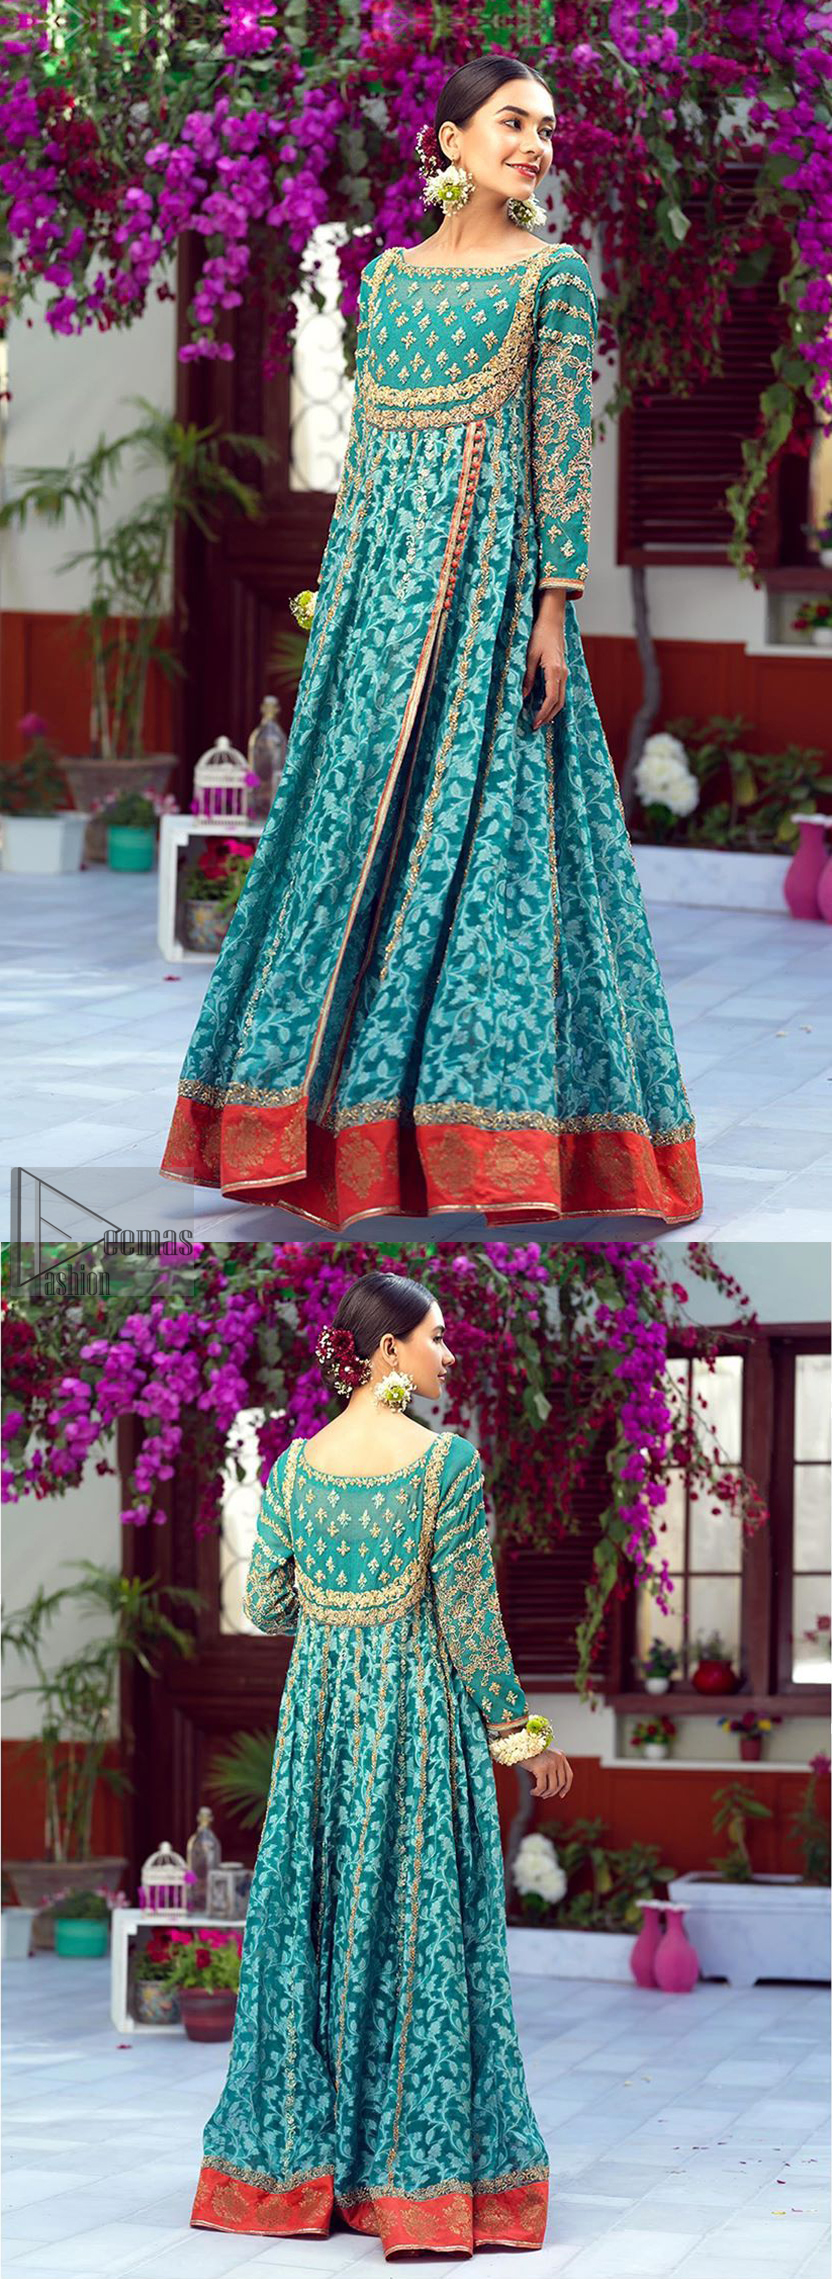 The perfect combination of tradition and class. With a lot of attention to detail, the intricate zardozi work with using glass beading and threads makes the bodice look like nothing but a dream. The tiny floral motifs are also scattered on the bodice. This mehndi outfit is ornamented with vertical embroidered lines and coral applique at the bottom. It comprises with sea green capri pants emphasized with embellished bottom and coral self fabric dupattta. You are all set to make a lasting impact with the divine royalty of this dress.